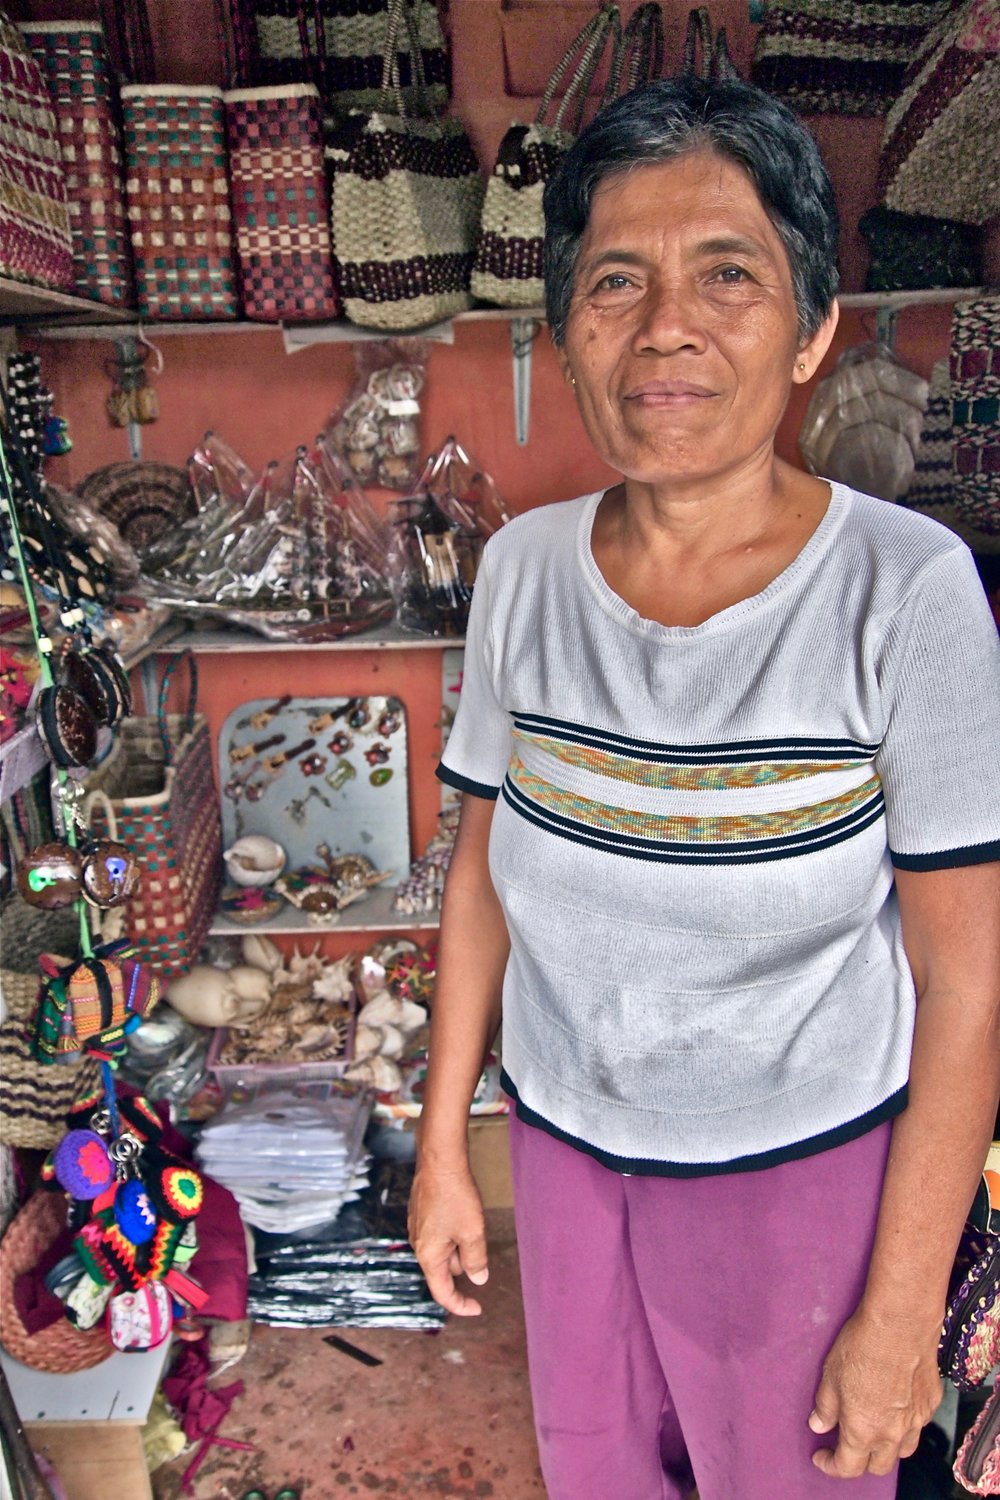 Helen Ybañez in her souvenir stall in Lapu-Lapu City, the Philippines. She is raising four grandchildren, while her son works in Saudi Arabia. (C) Remko Tanis